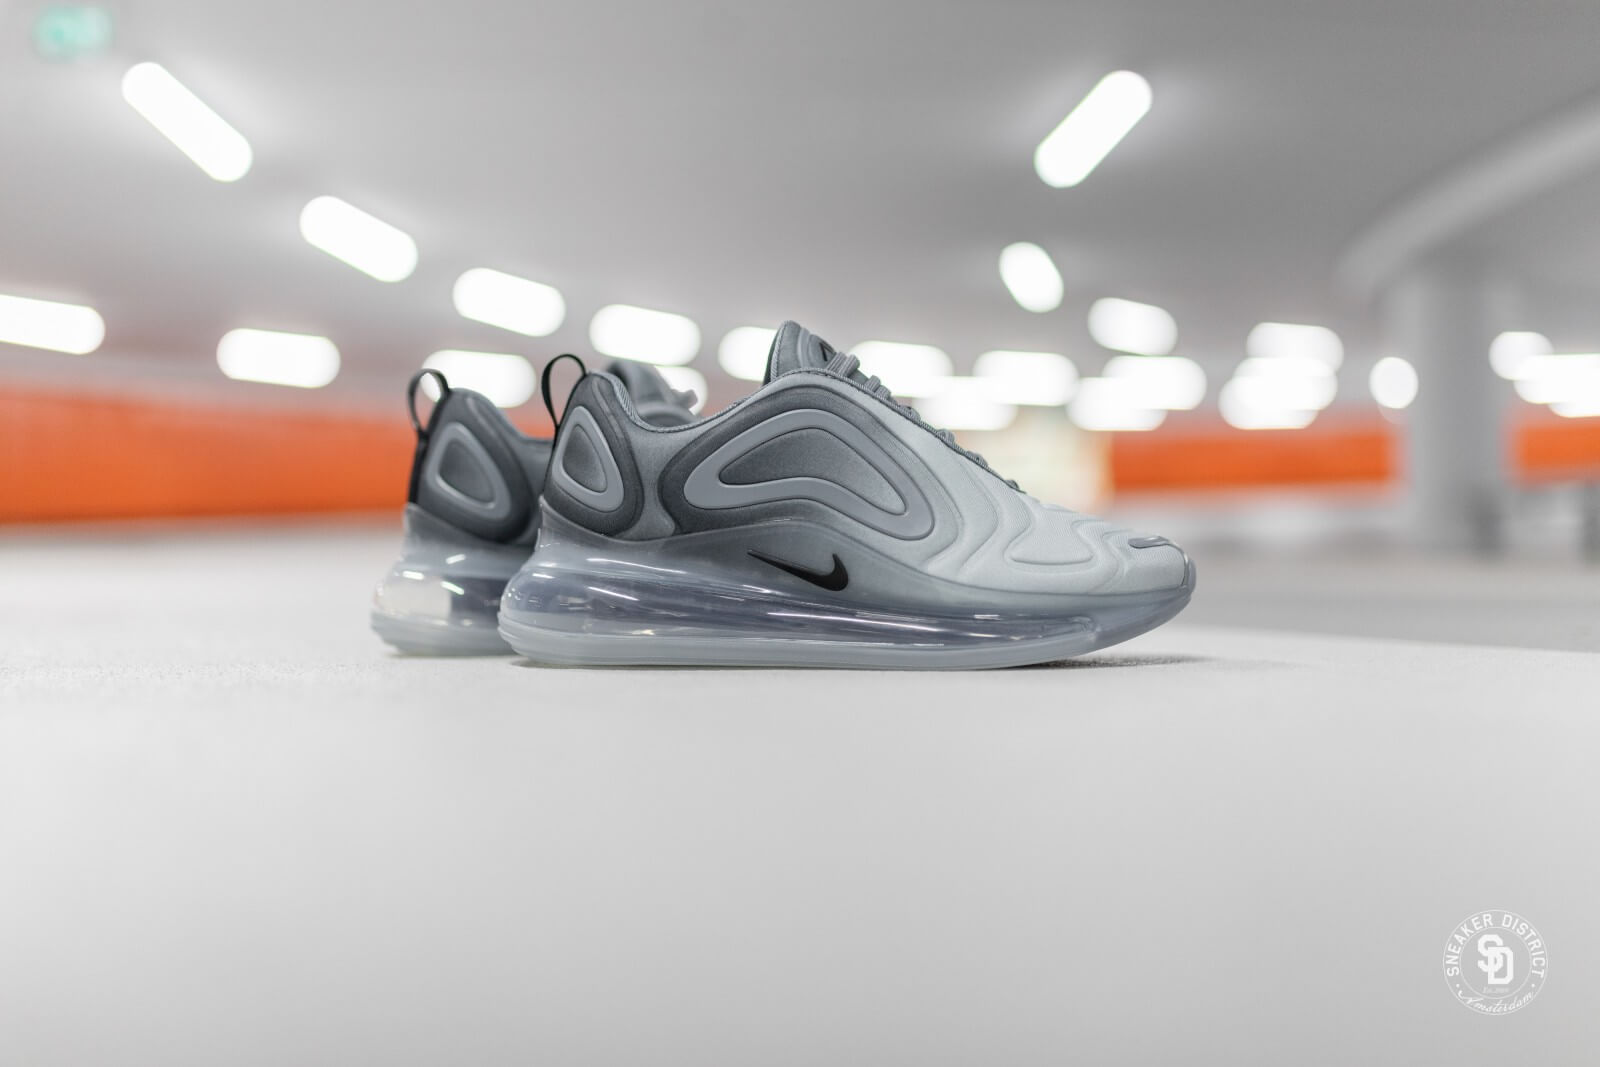 Nike Air Max 720 Cool GreyBlack Wolf Grey AO2924 002